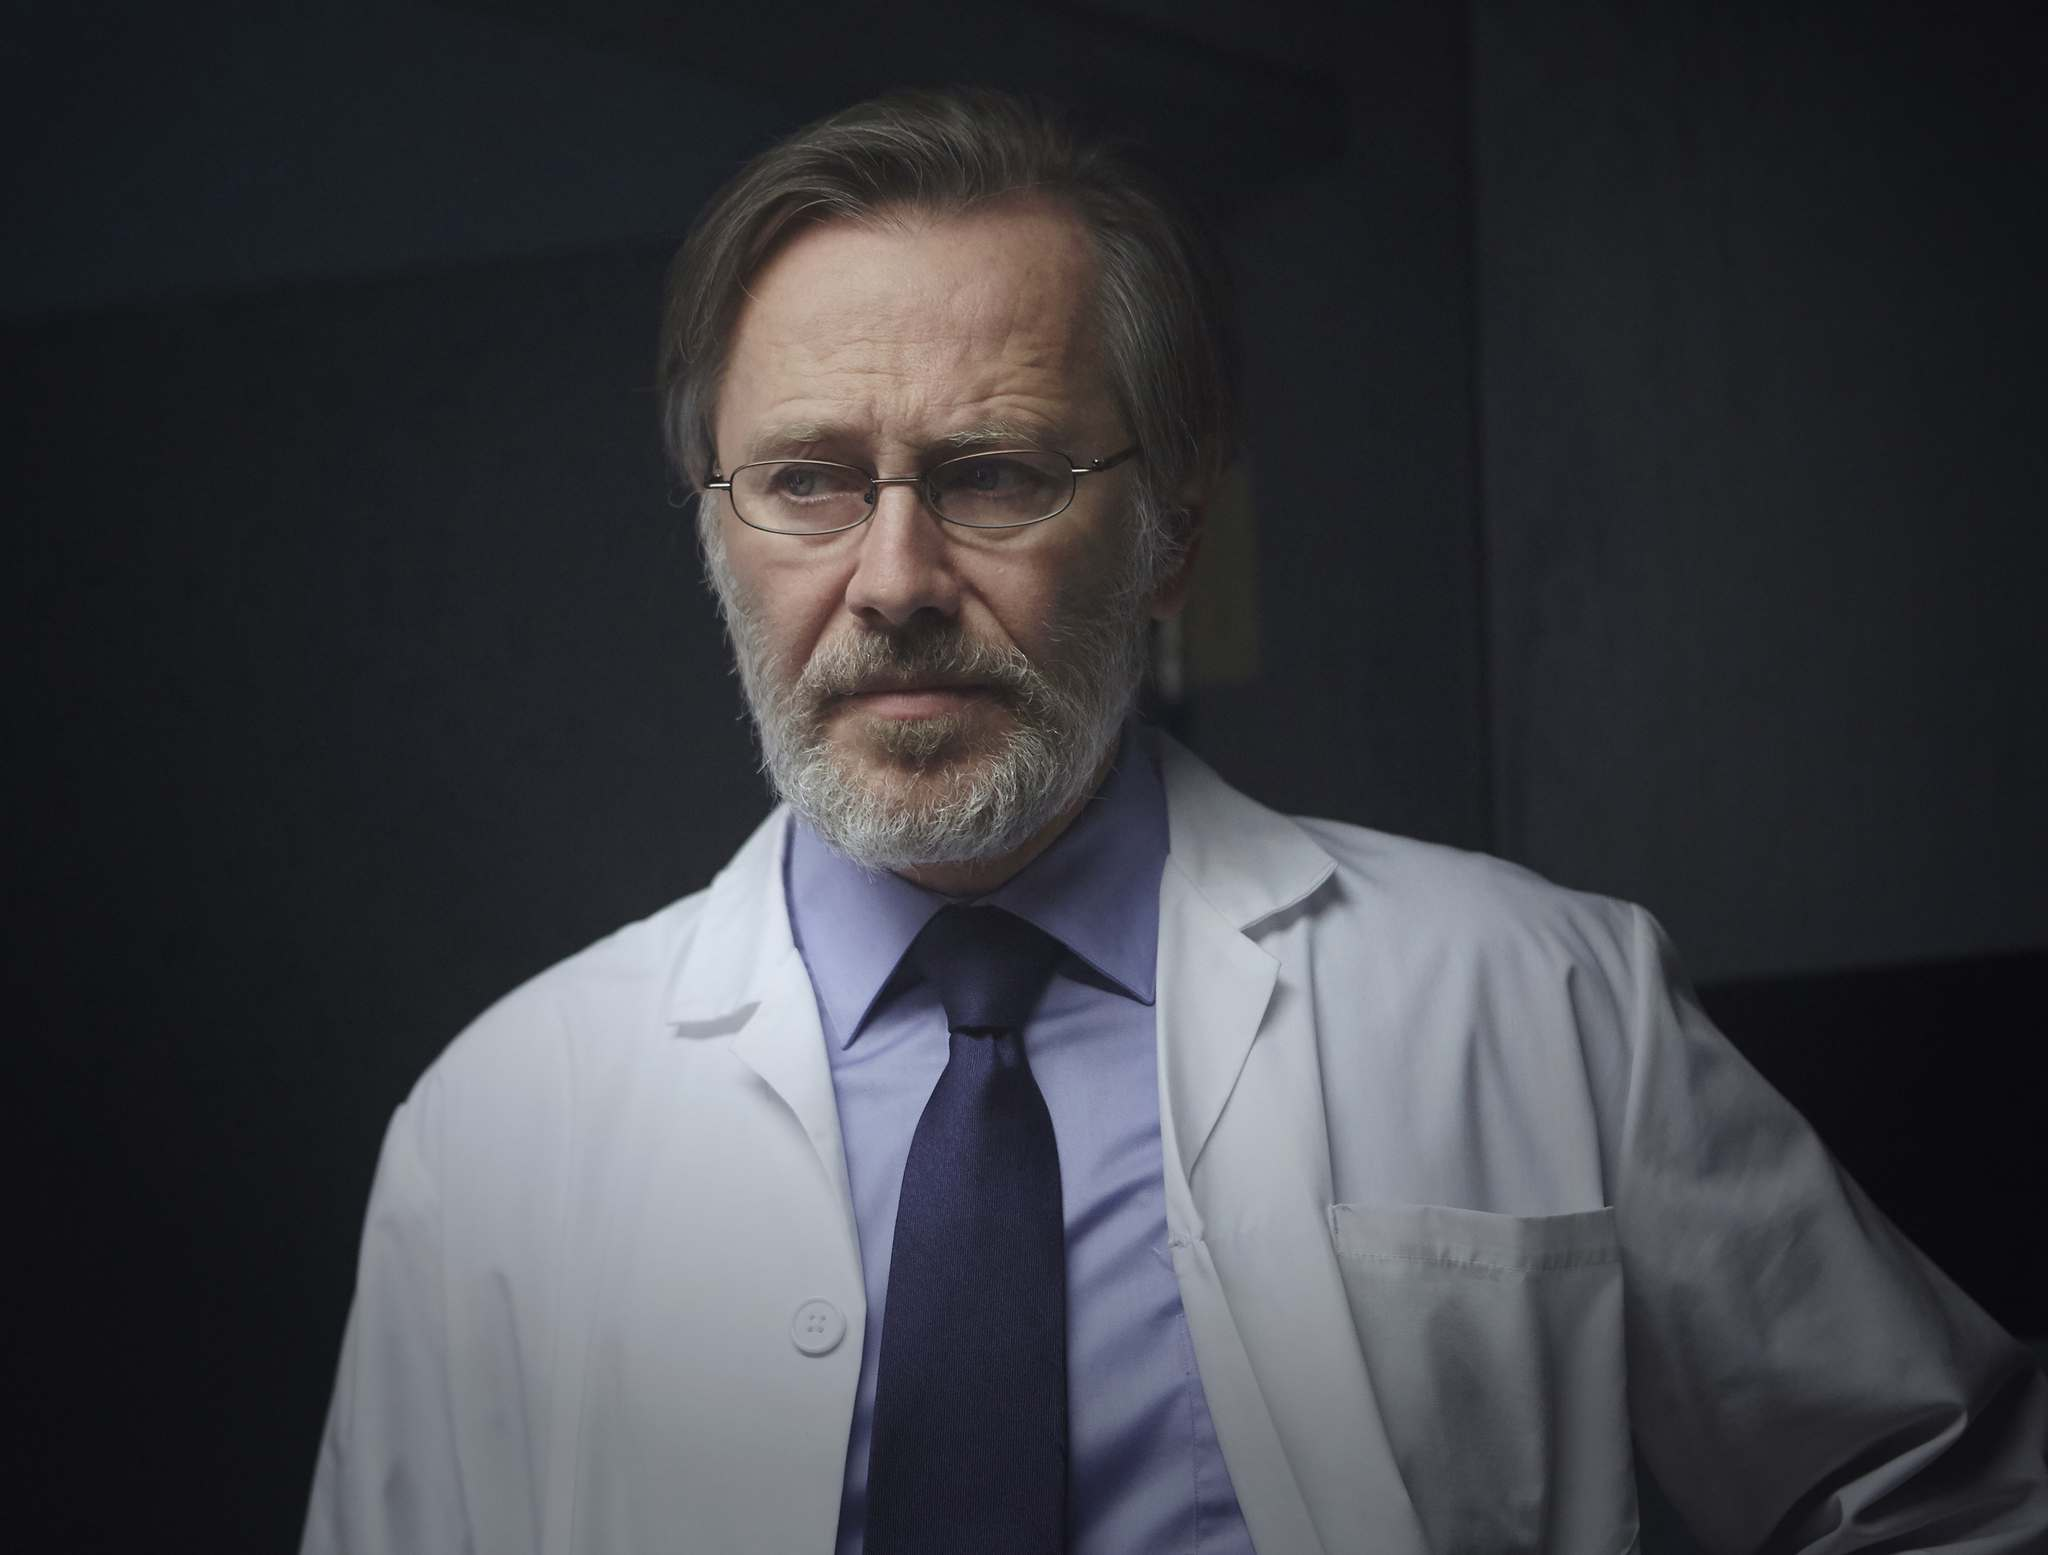 Vestalis Academy is in fact quite fiendish, notwithstanding the charitable claims of the male administrator Dr. Miro (Peter Outerbridge).